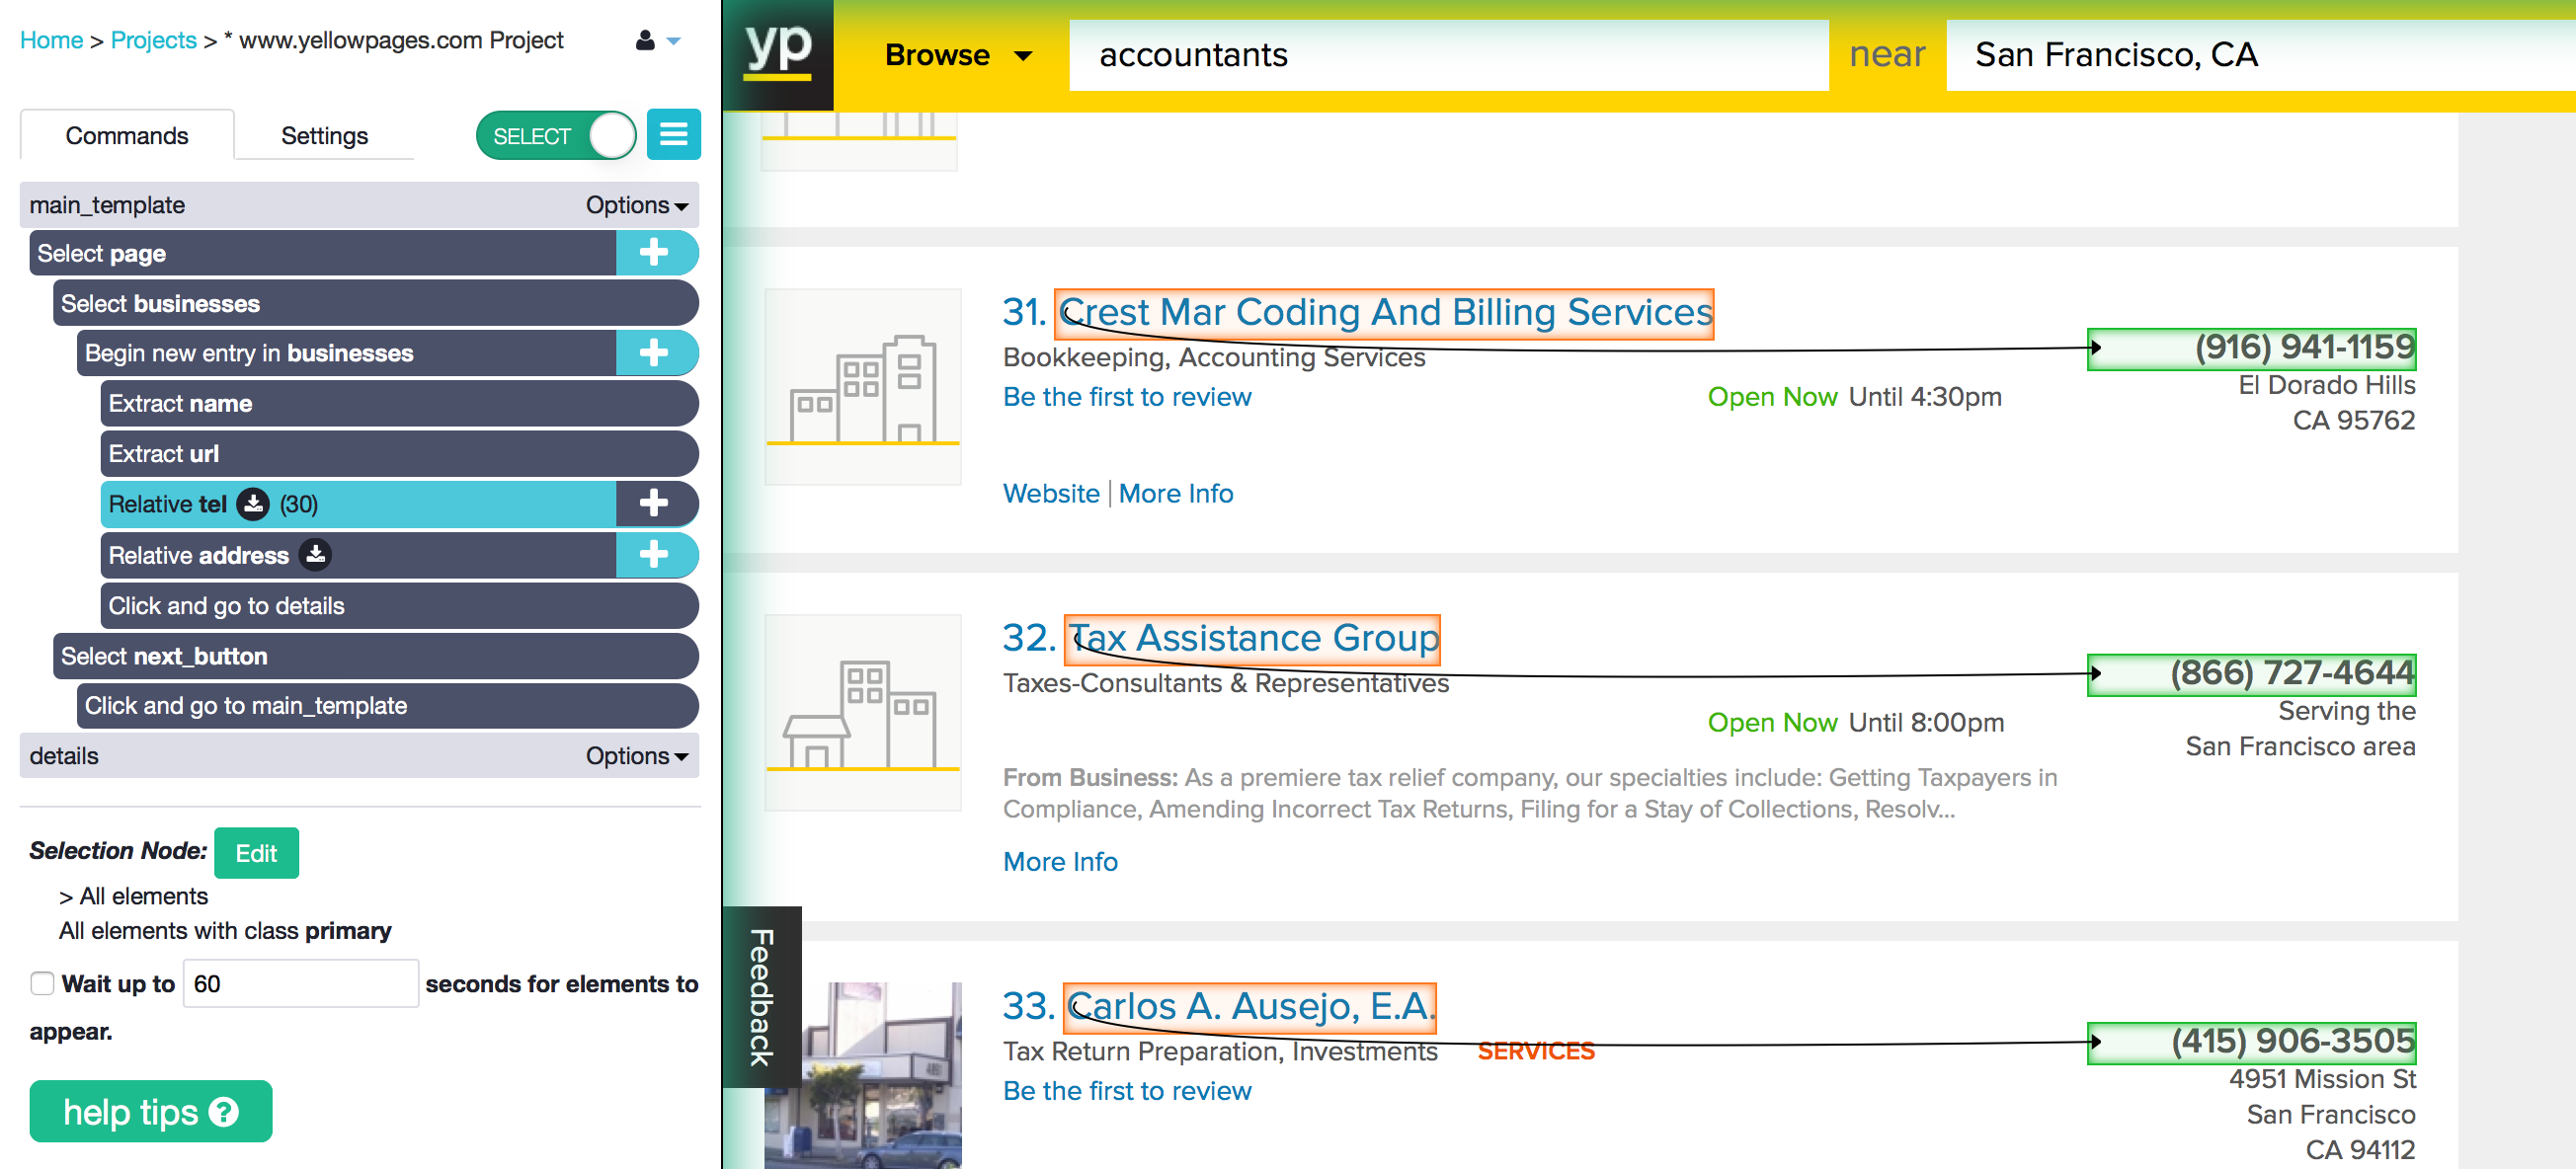 scrape contact information from yellowpages